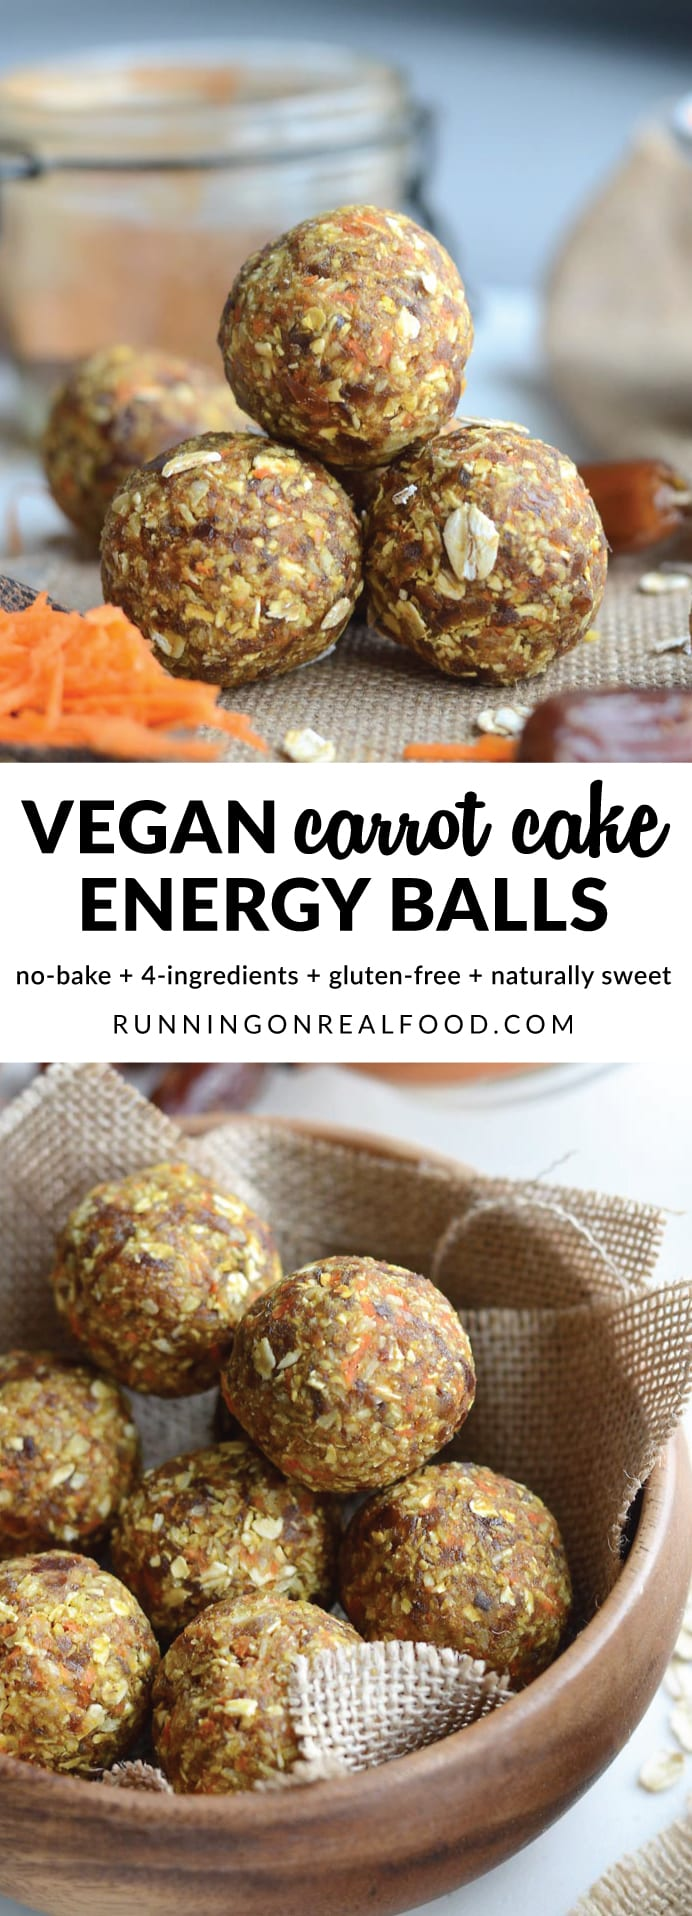 These delicious, no-bake, vegan carrot cake energy balls are sure to be your new favourite snack. Easy to make in minutes with just 4 ingredients plus cinnamon and sea salt. Nut-free, oil-free, no added sugar, gluten-free.